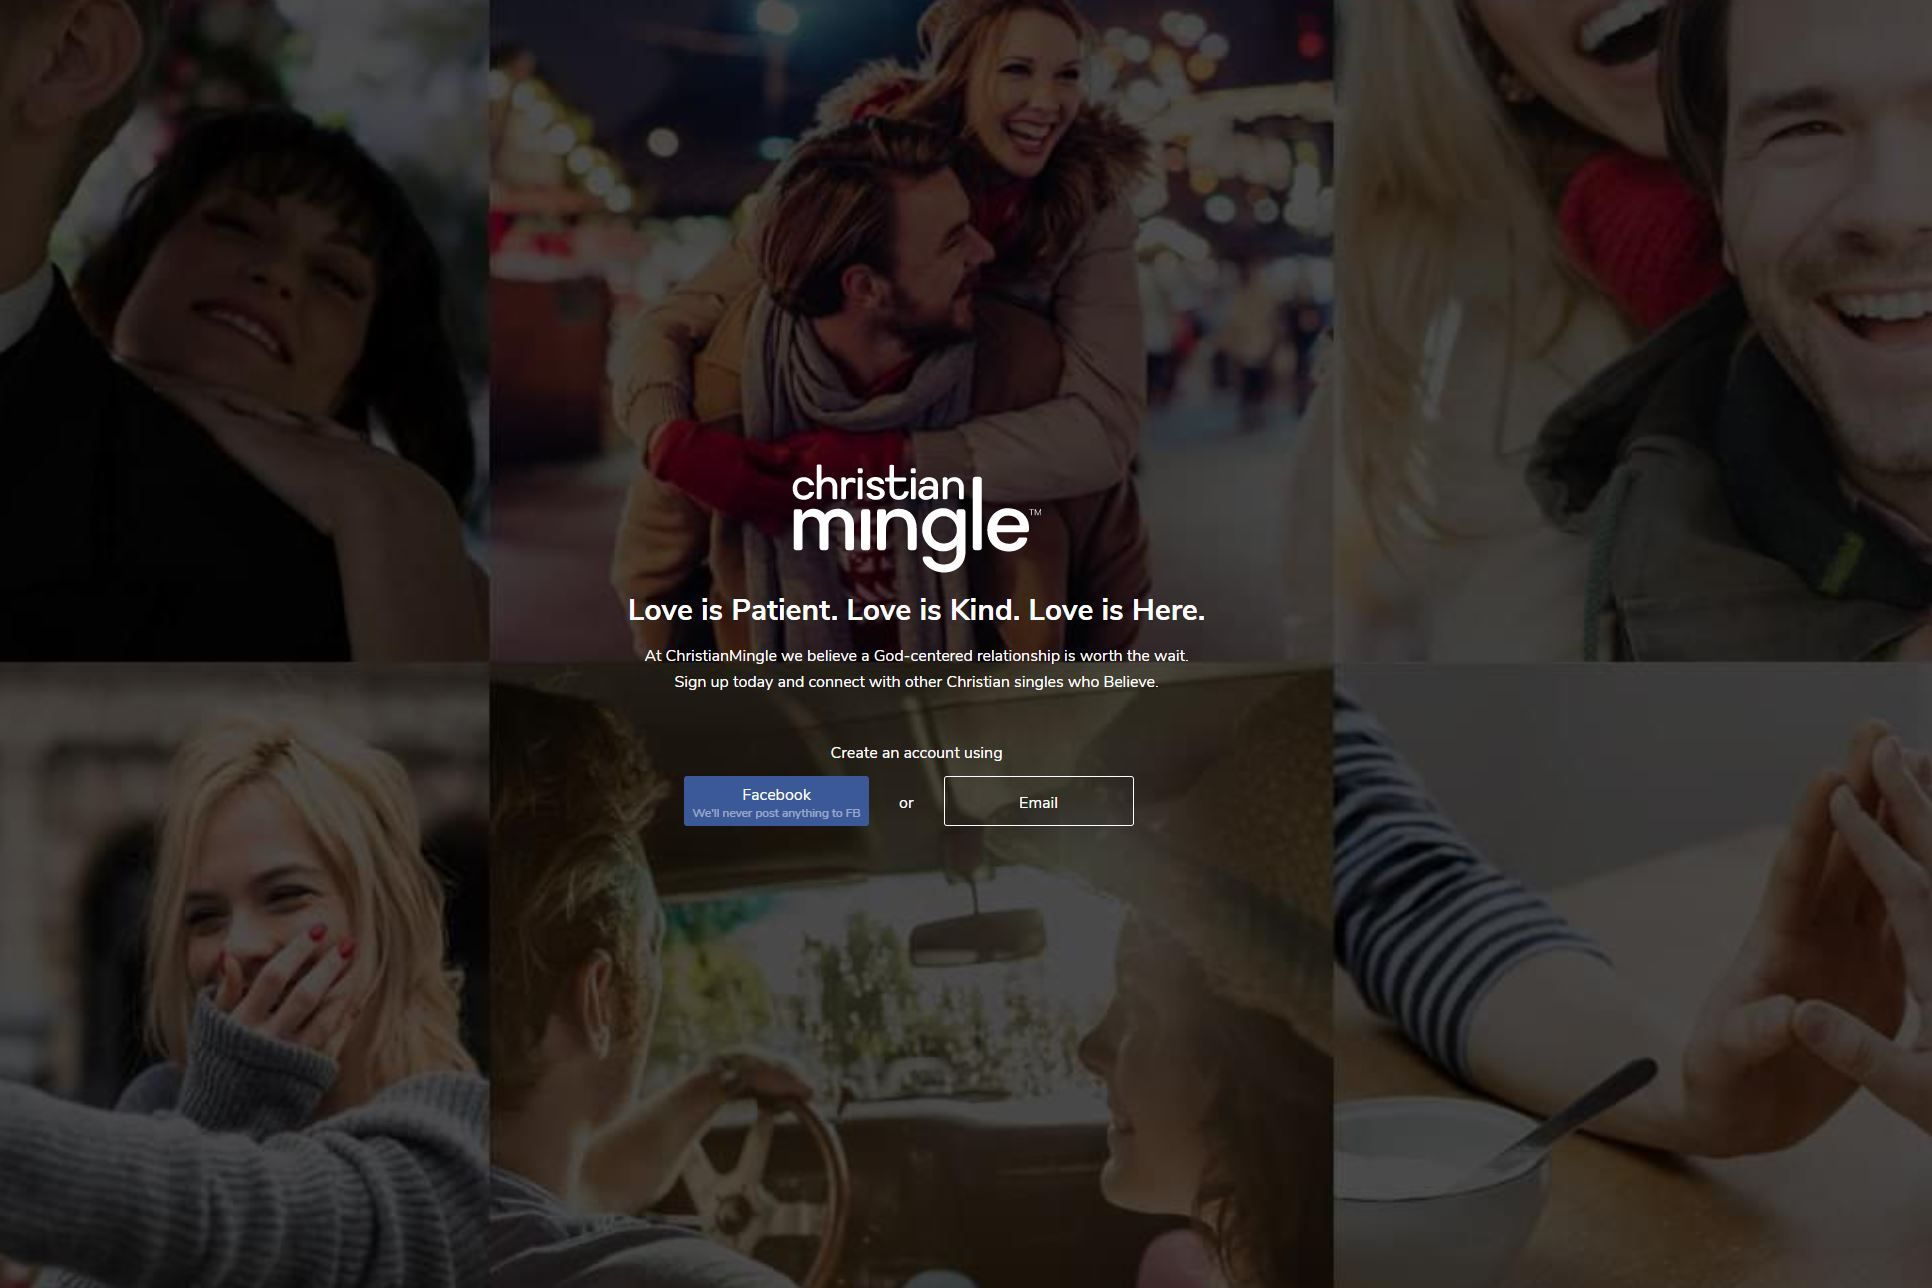 Christian mingle dating site for seniors